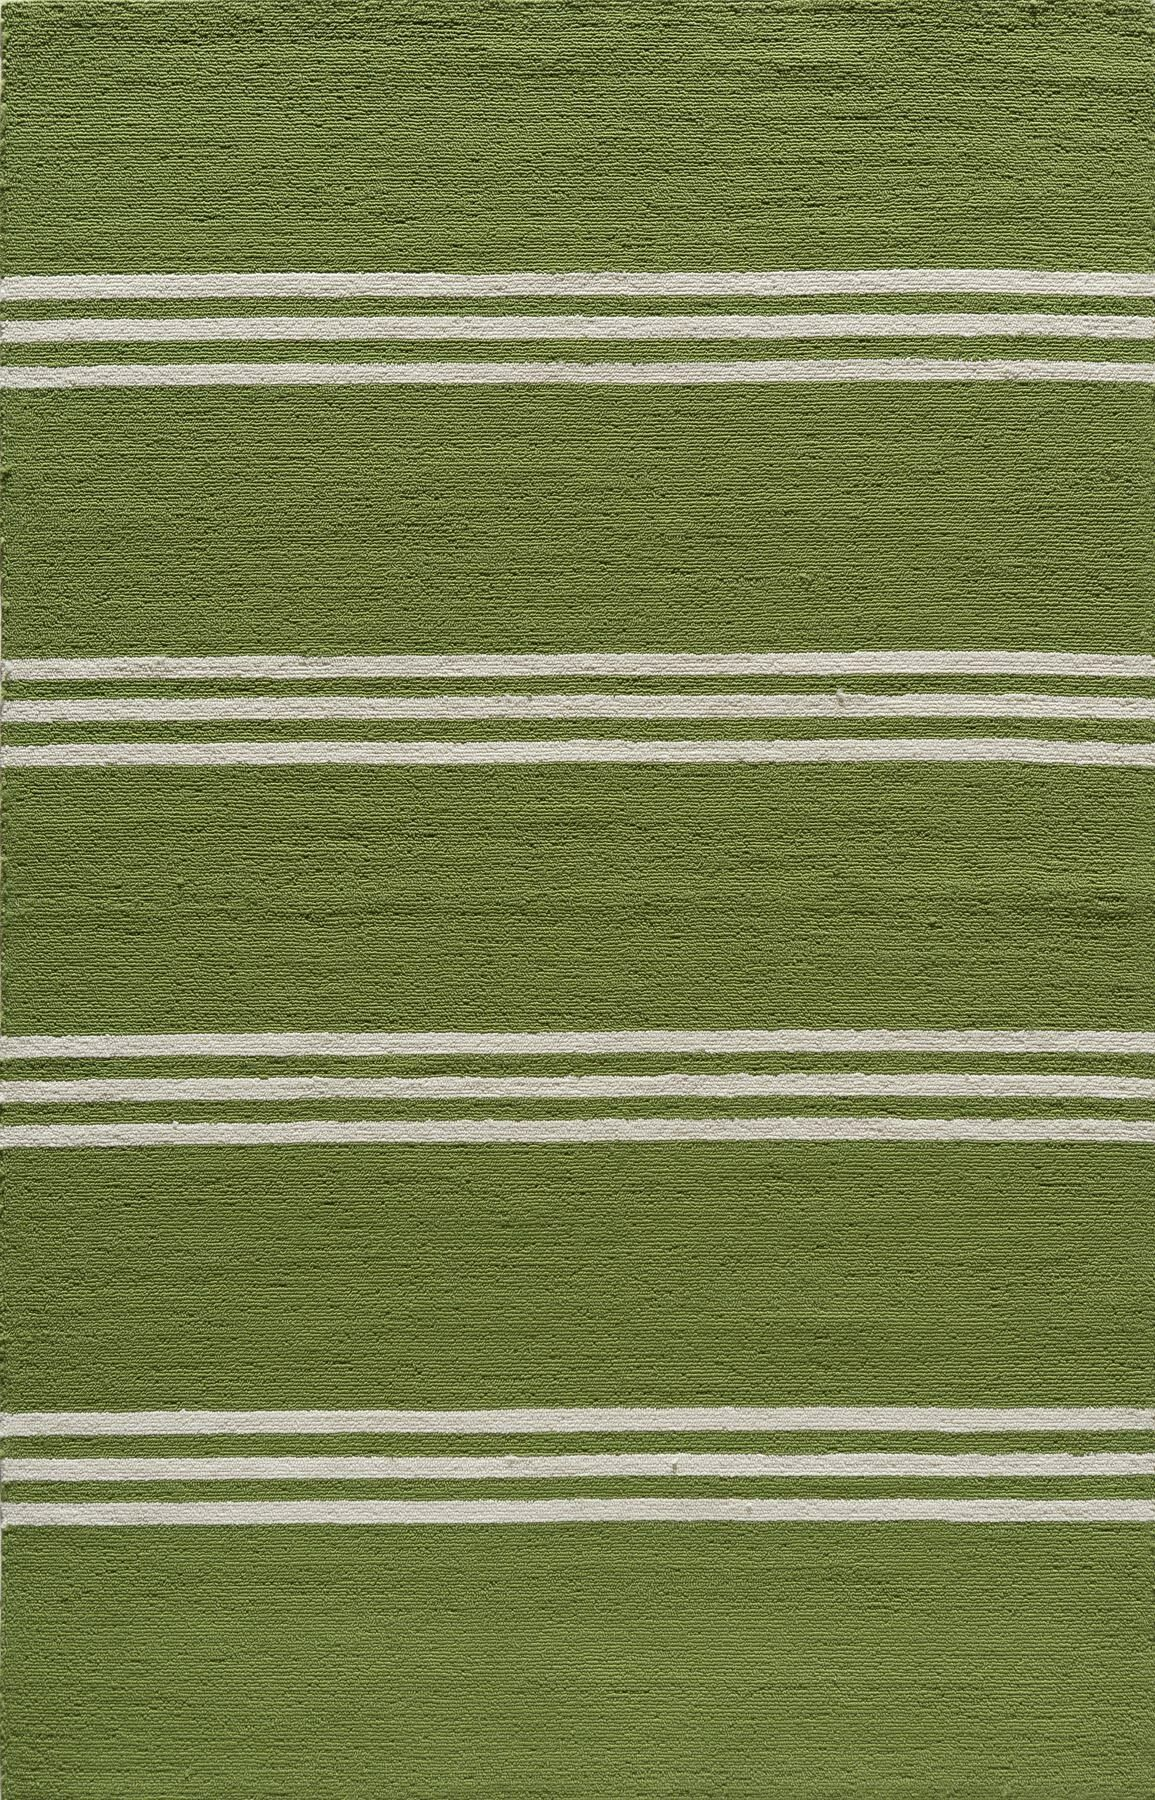 Dreadnought Hand-Hooked Lime Indoor/Outdoor Area Rug Rug Size: Rectangle 8' x 10'